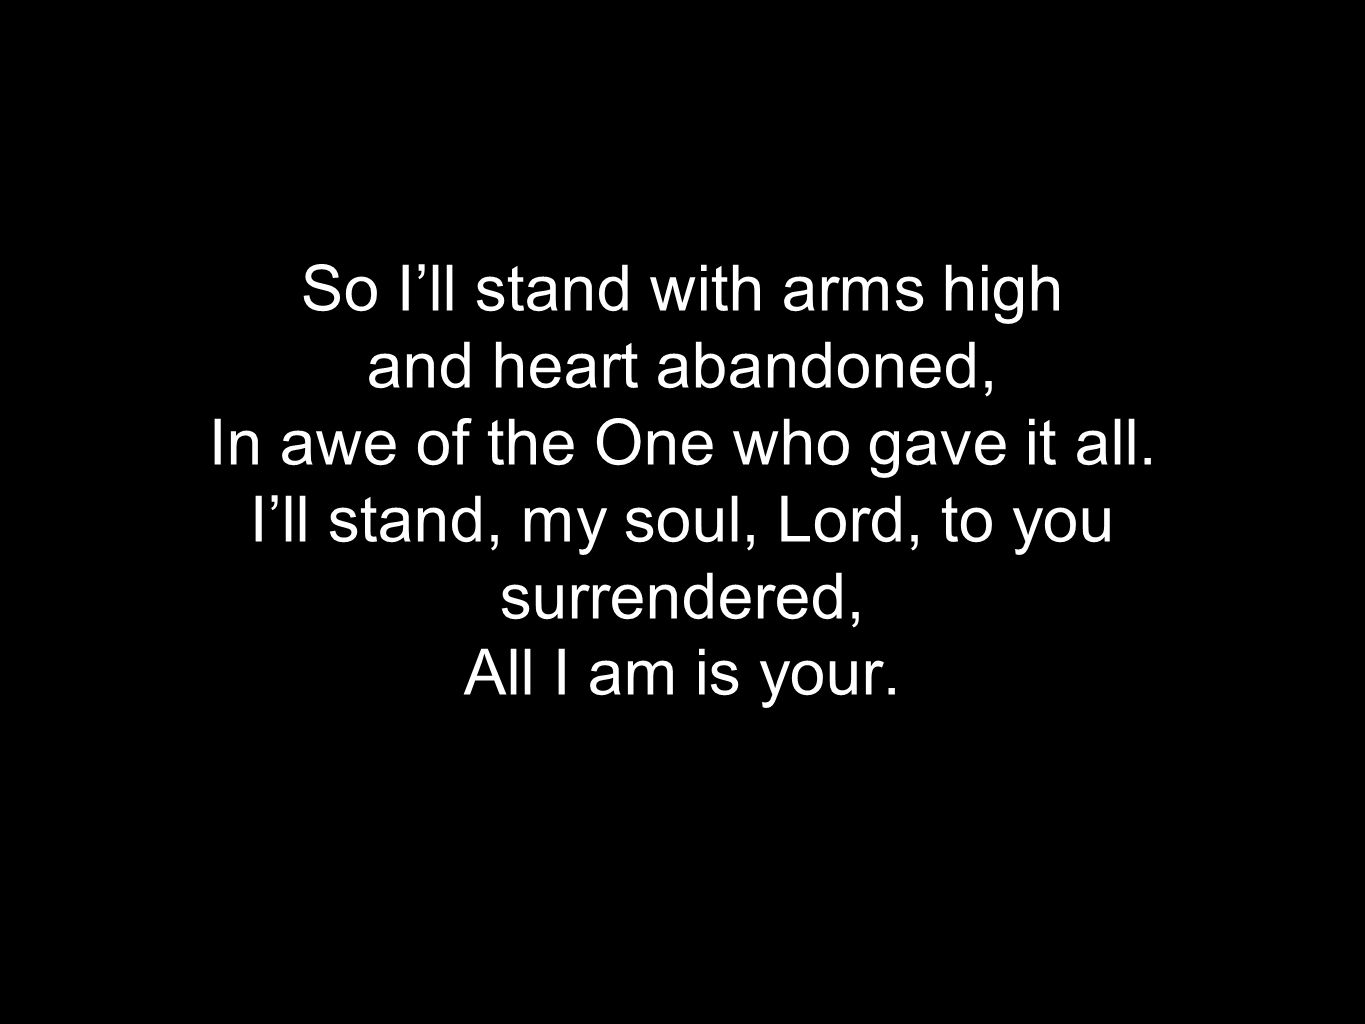 Verse 1 So I'll stand with arms high and heart abandoned, In awe of the One who gave it all.